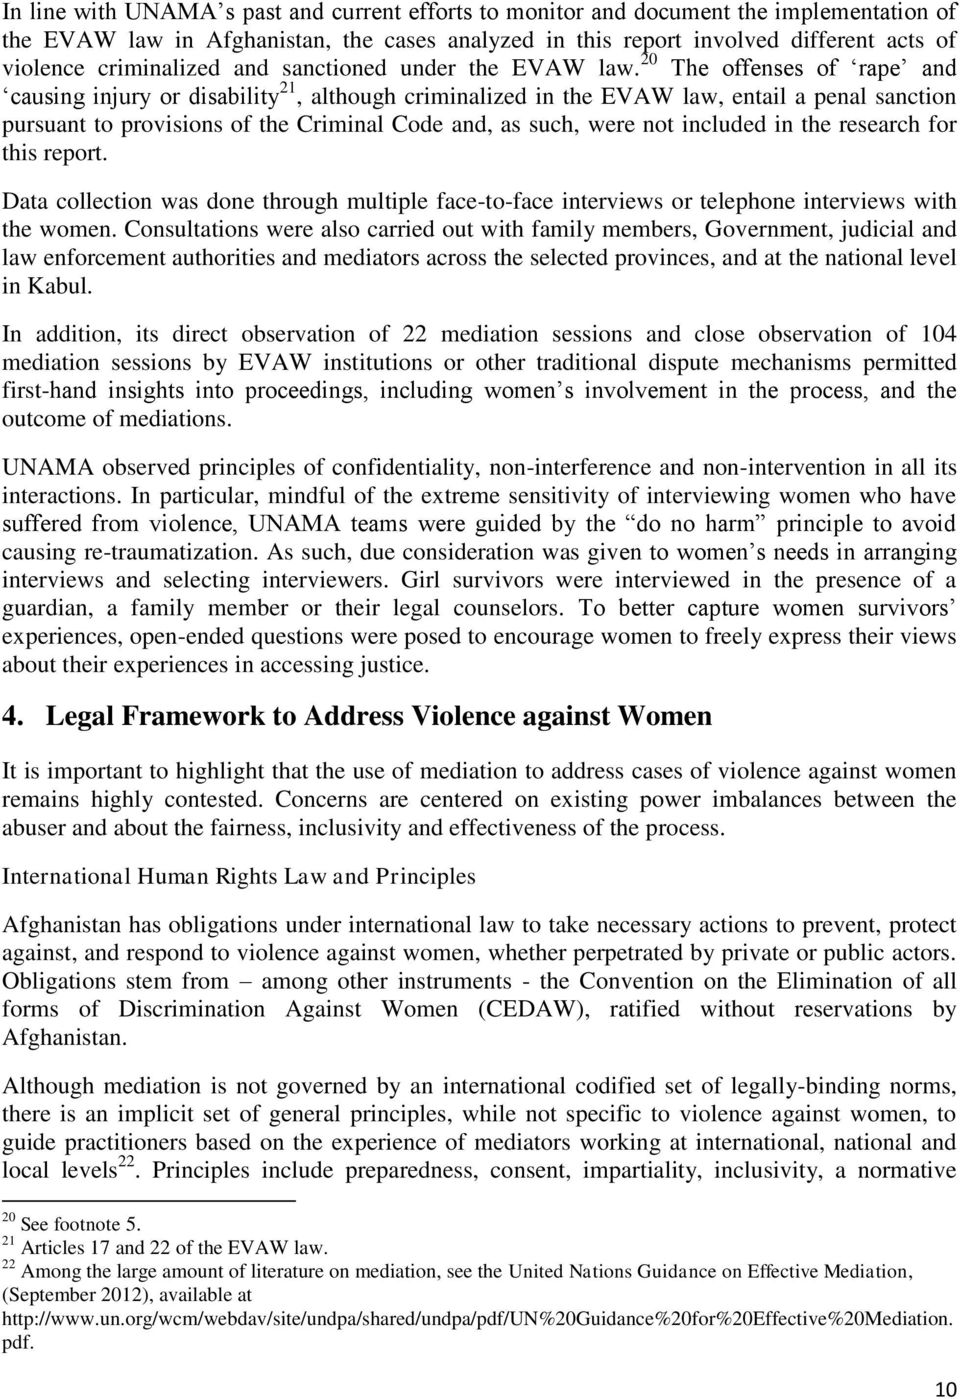 20 The offenses of rape and causing injury or disability 21, although criminalized in the EVAW law, entail a penal sanction pursuant to provisions of the Criminal Code and, as such, were not included